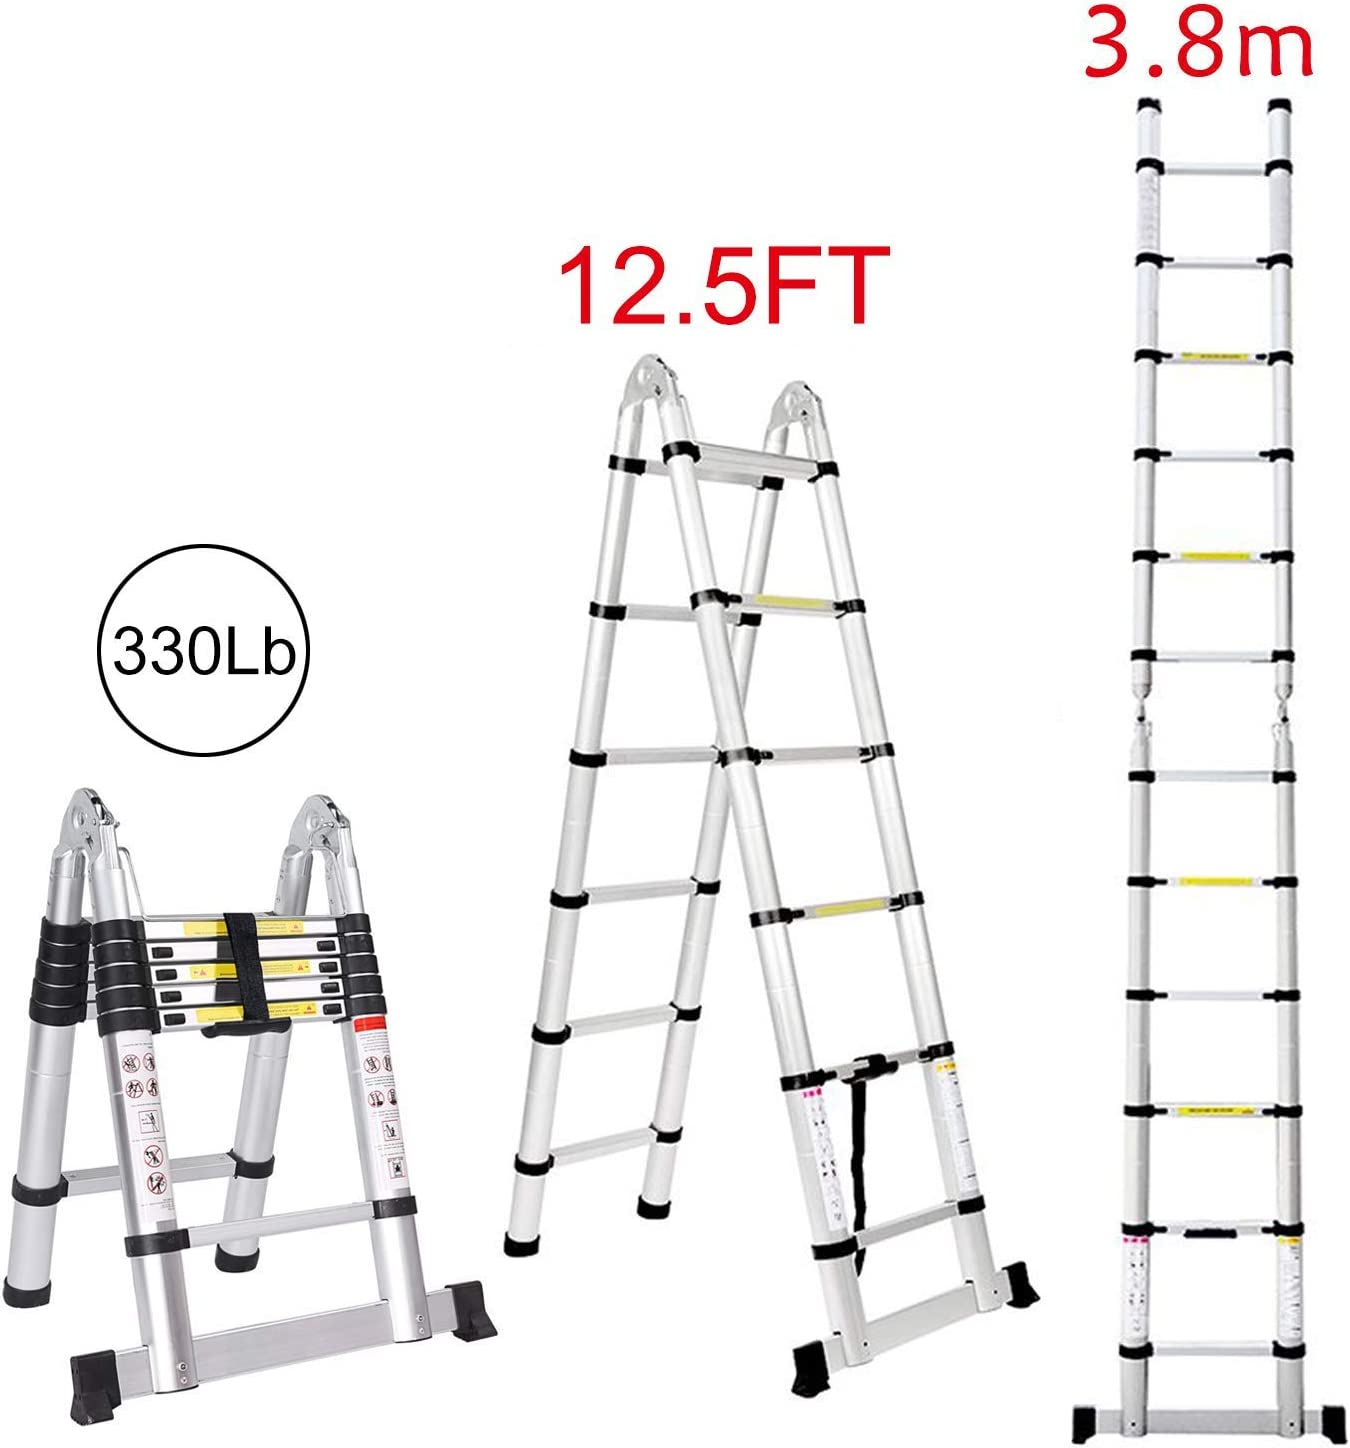 Jiahe12.5FT/3.8M Aluminum Telescoping Extension Ladder Portable Multi-Purpose Folding A-Frame Ladder with Hinges